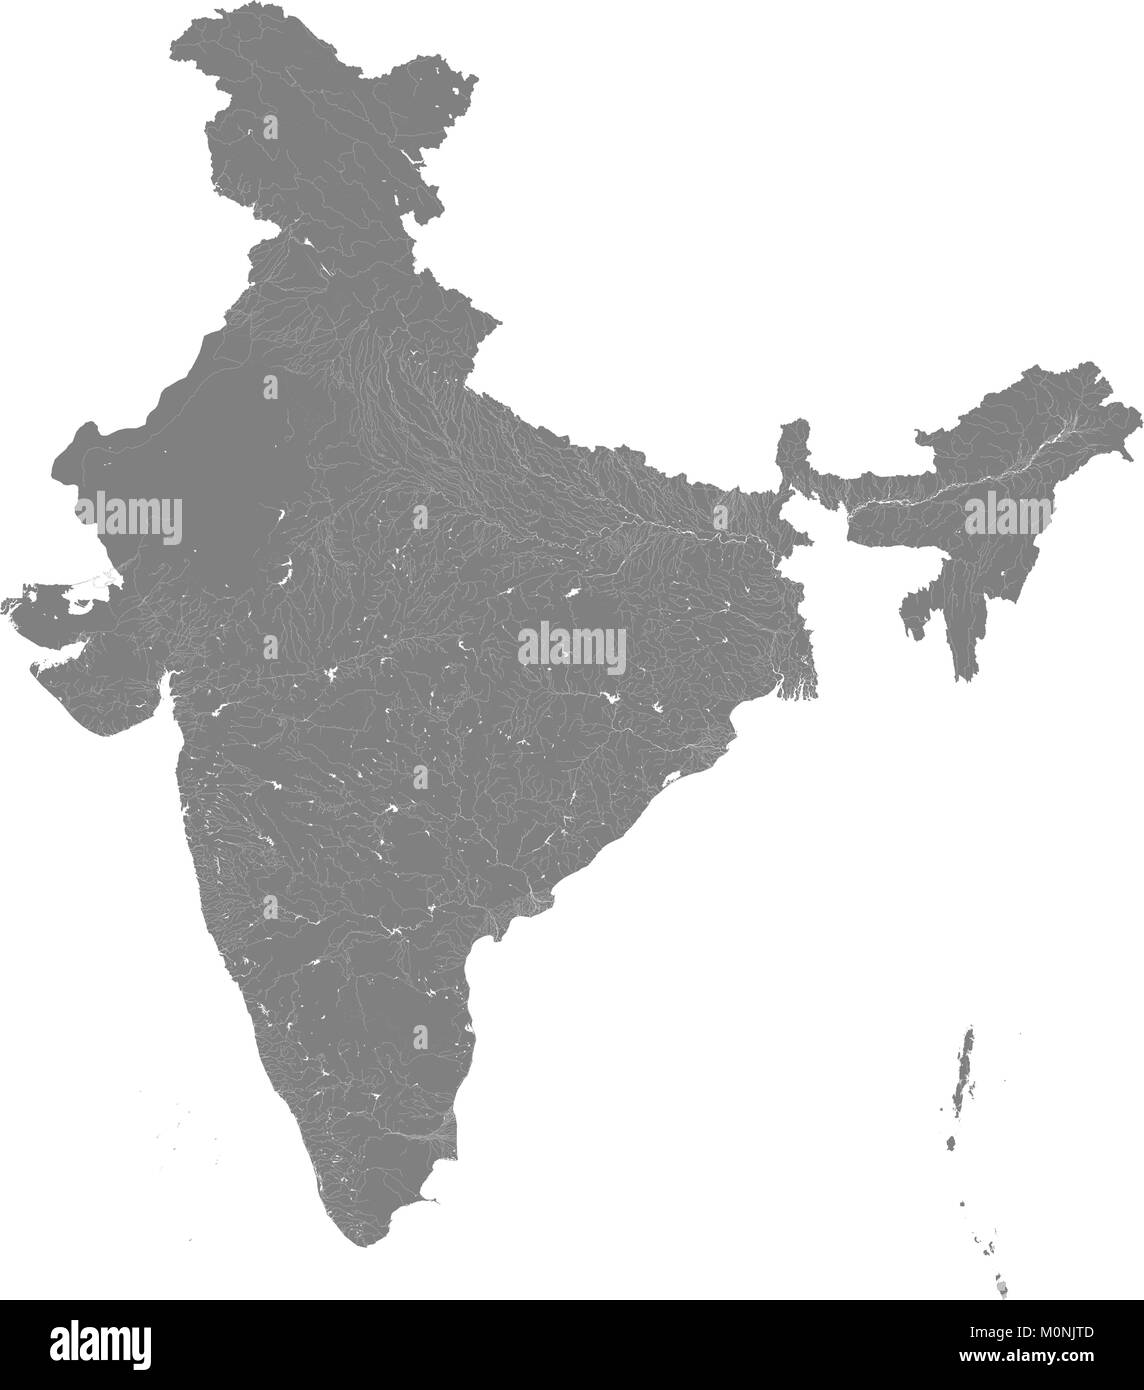 Map of India with rivers and lakes. Especially looks nice at high magnification. Not for navigational use. - Stock Image